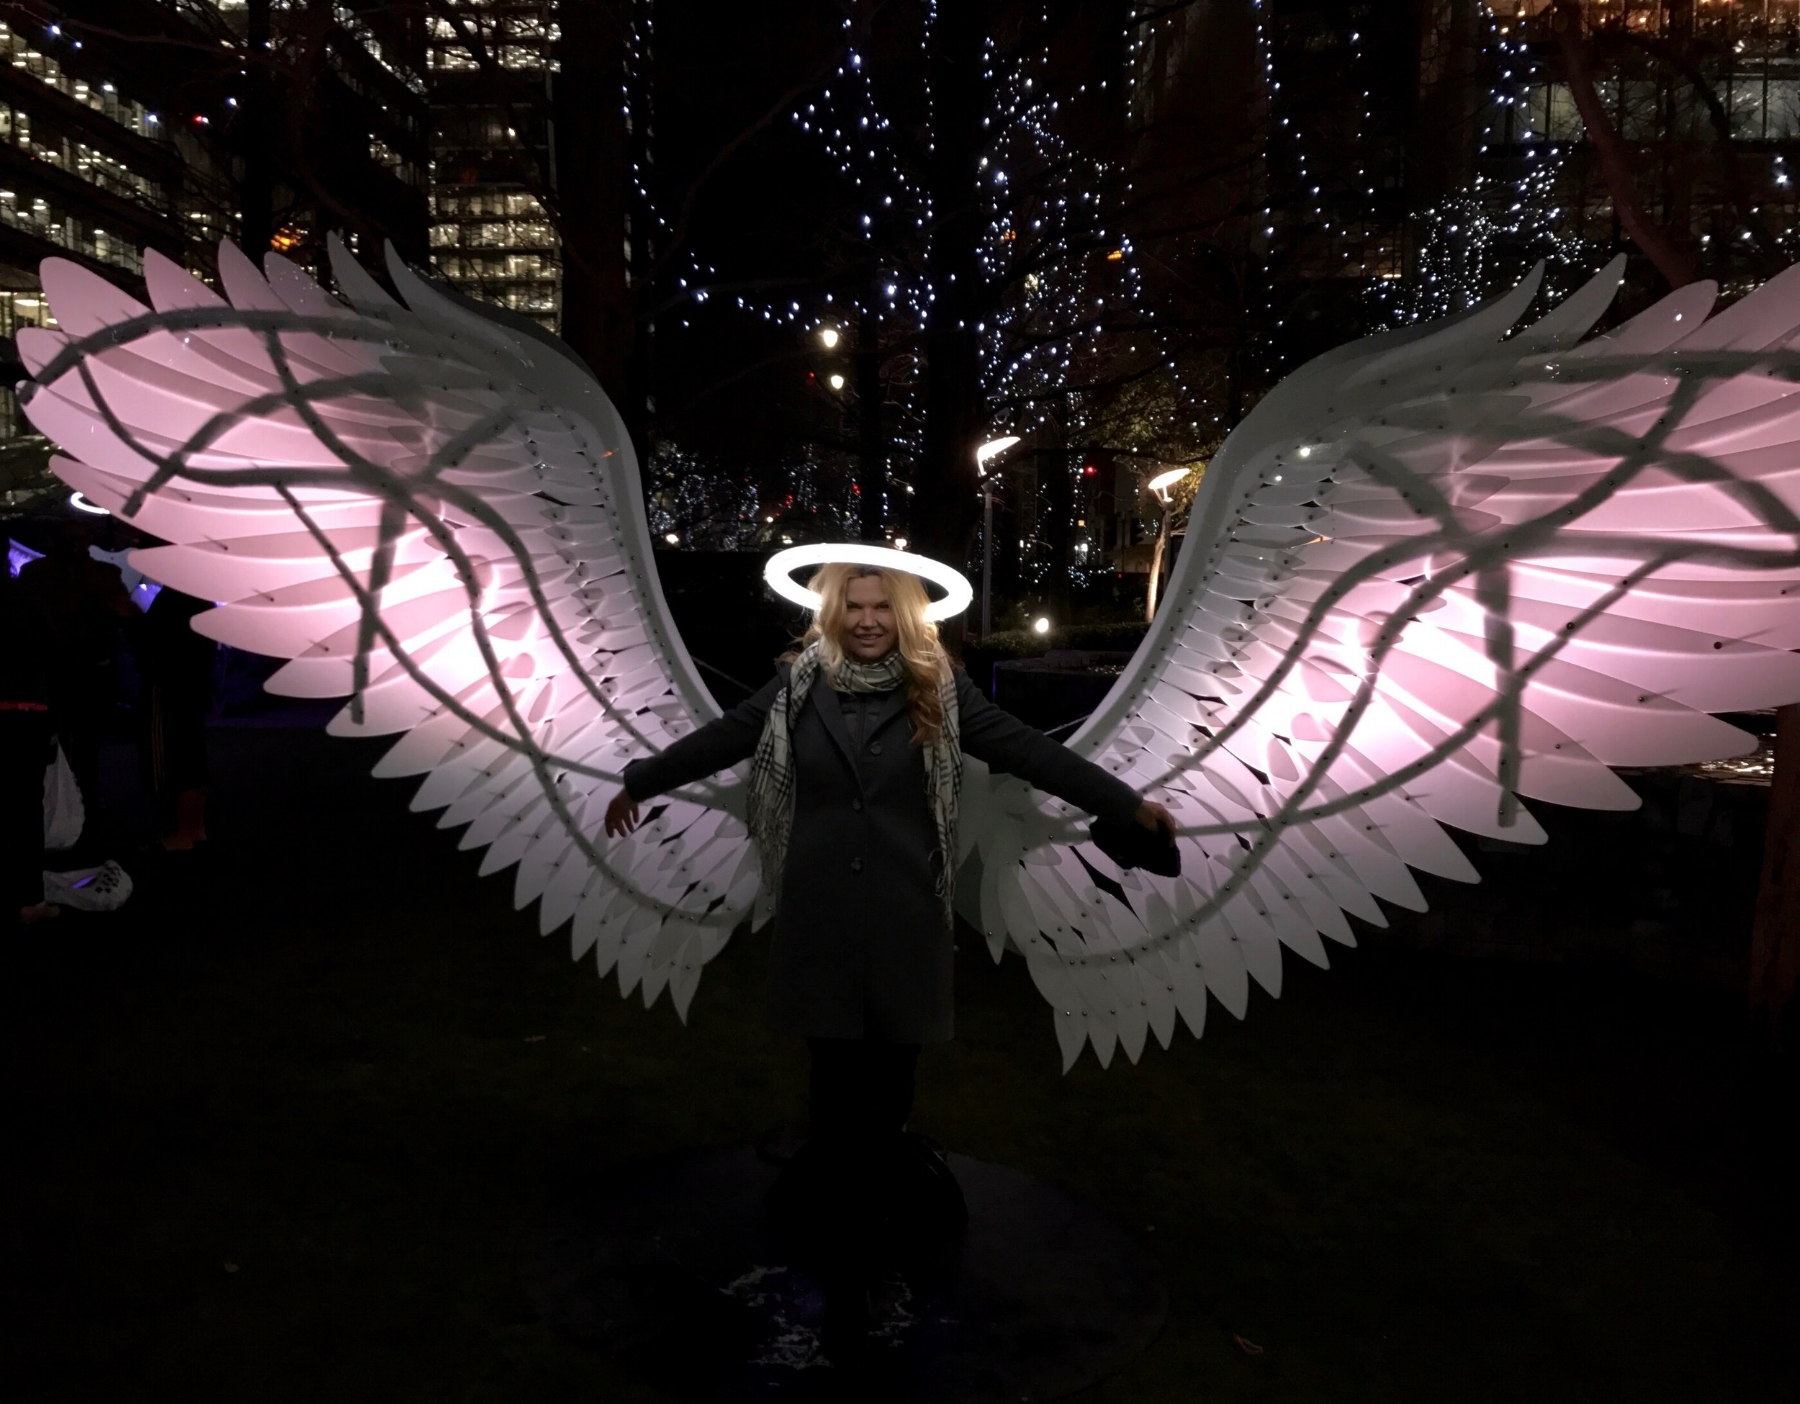 A Broad in London at Angels of Freedom, Canary Wharf 2017